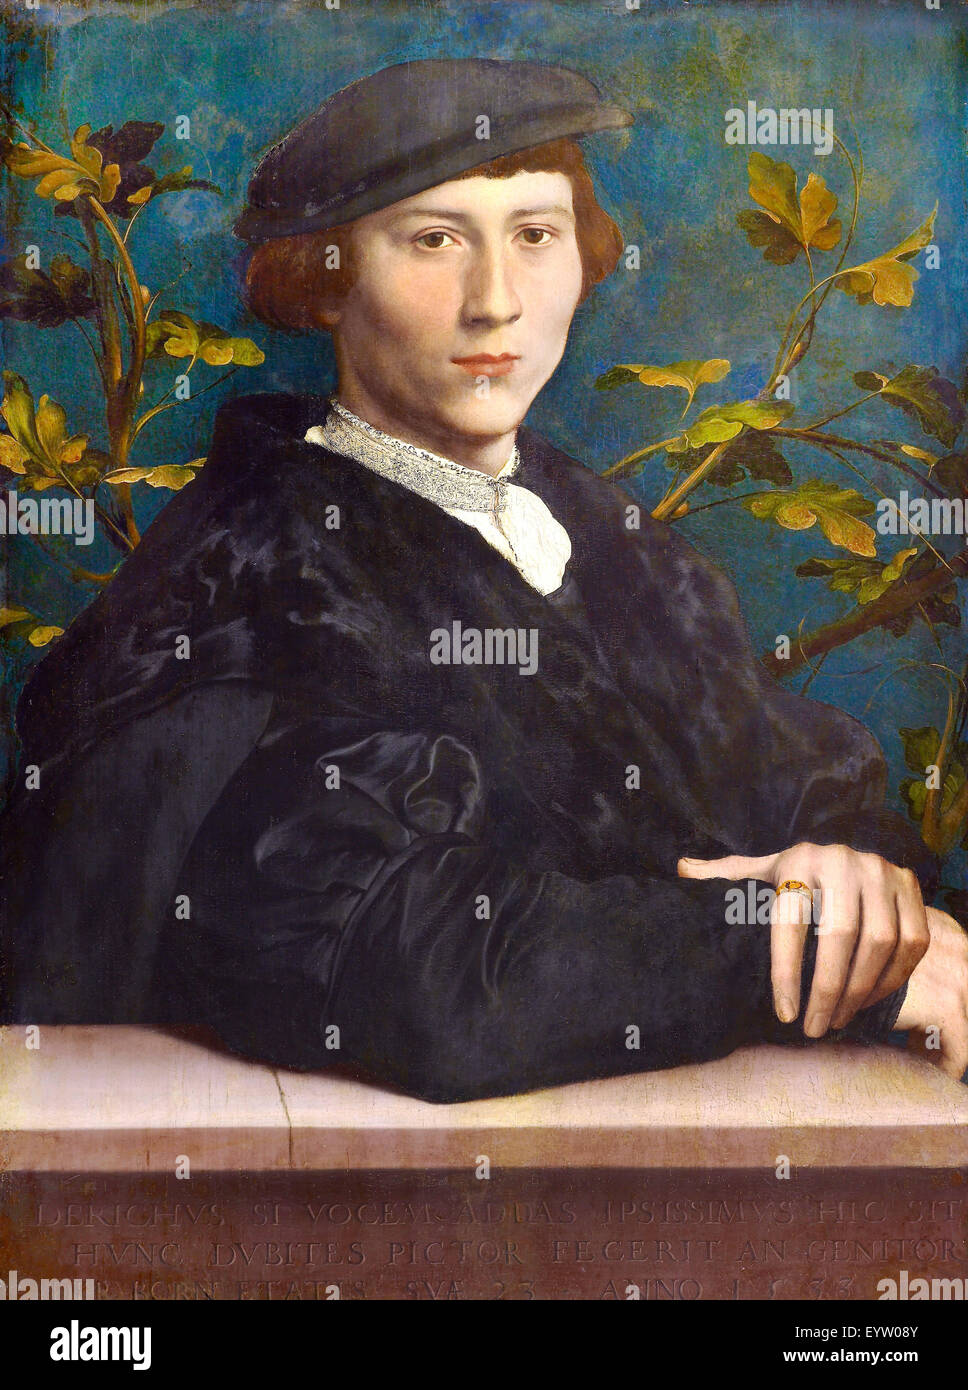 Hans Holbein the Younger, Derich Born 1533 Oil on canvas. Royal Collection of the United Kingdom. - Stock Image